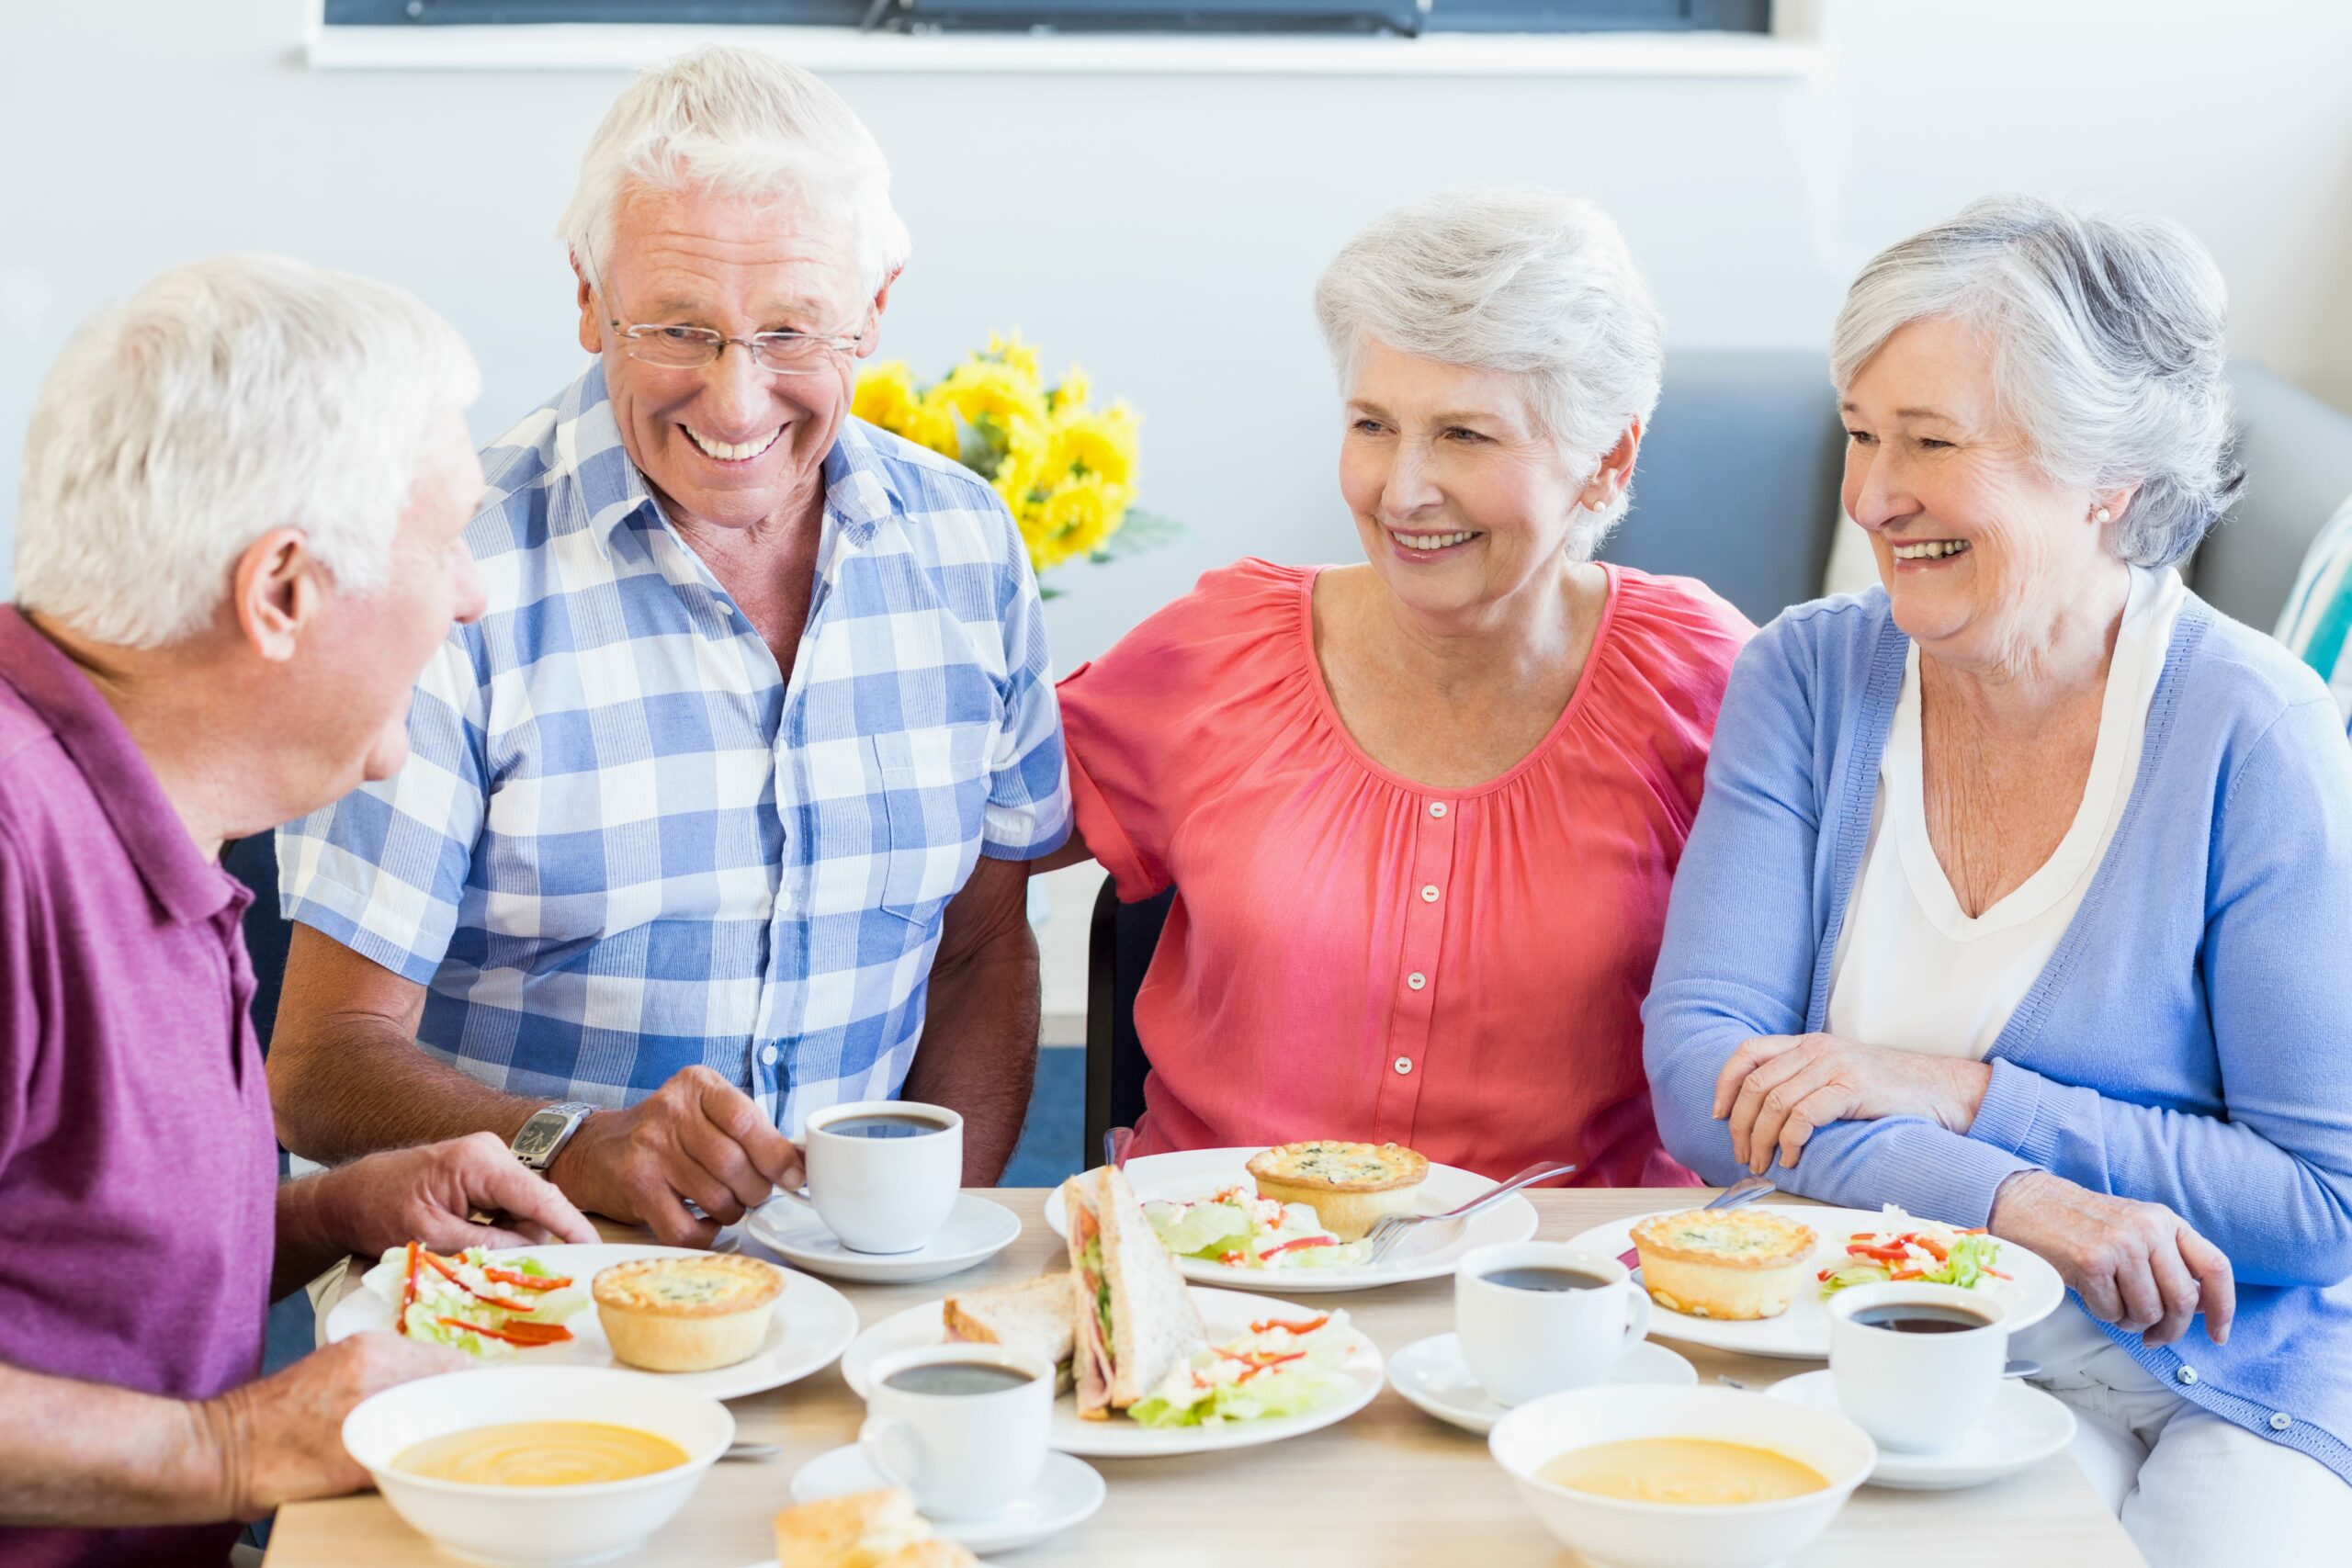 Older adults in nursing home eating a balanced meal